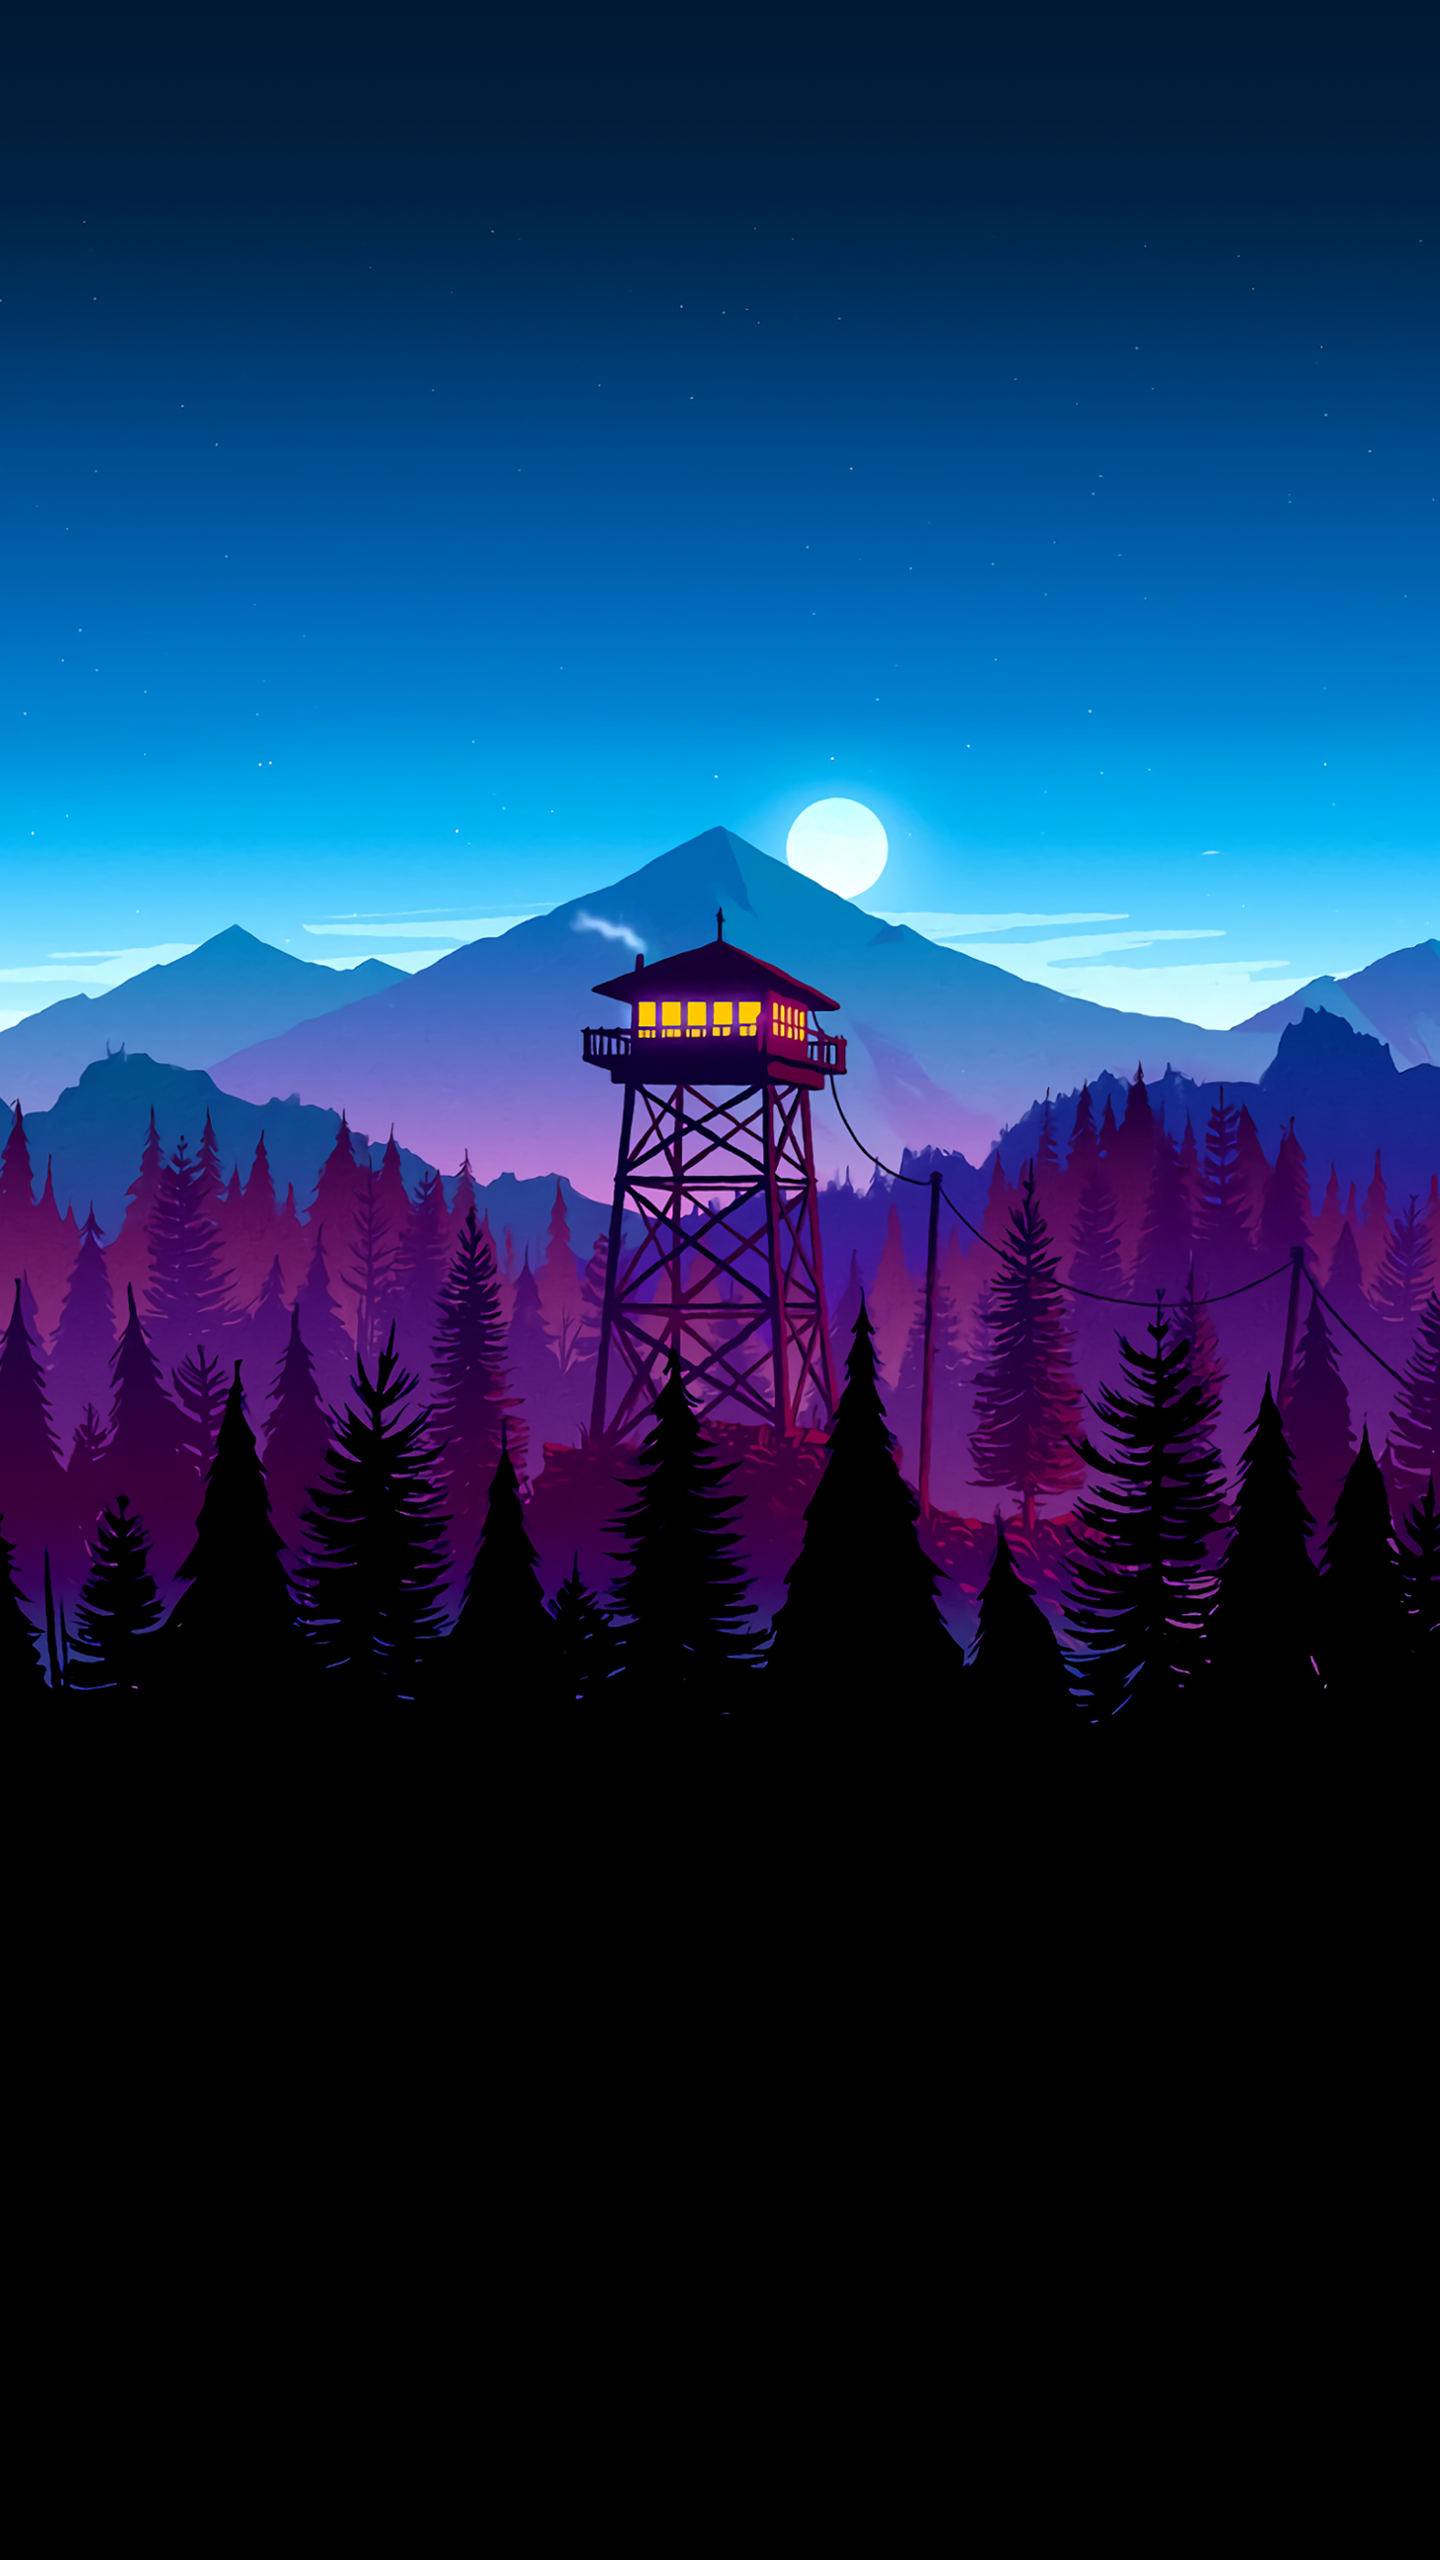 Firewatch Night Time Scene 1440x2560 Imgur Scenery Wallpaper Landscape Wallpaper Minimalist Wallpaper